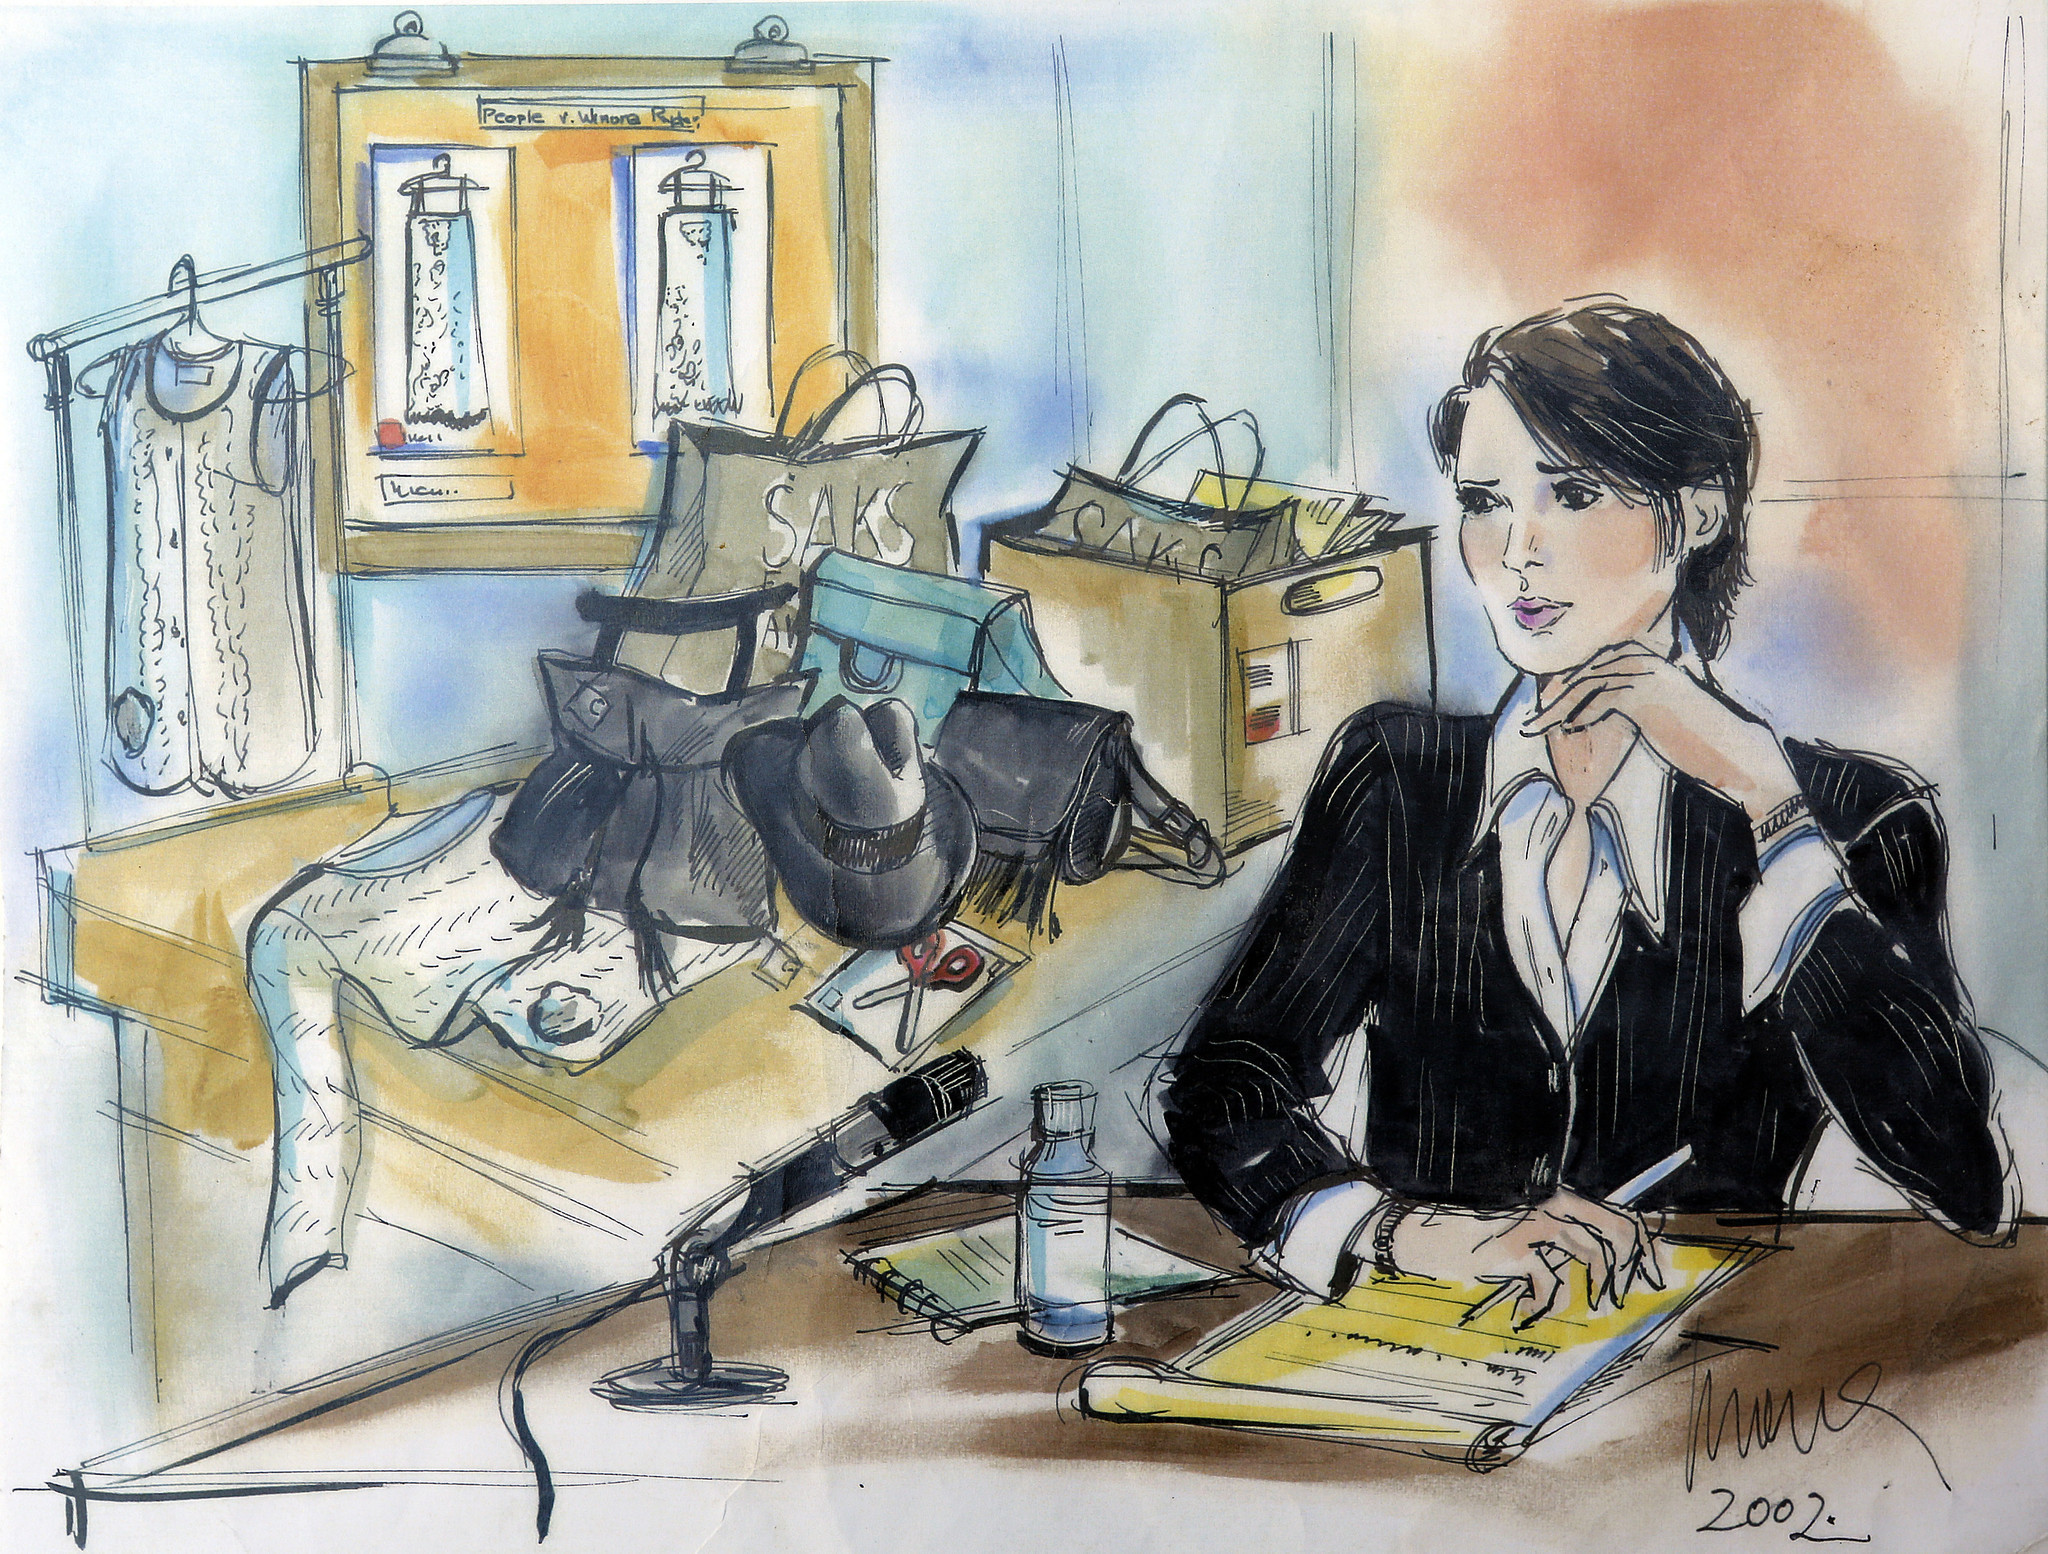 Evidence may be sketchy, but not this courtroom artist's drawings